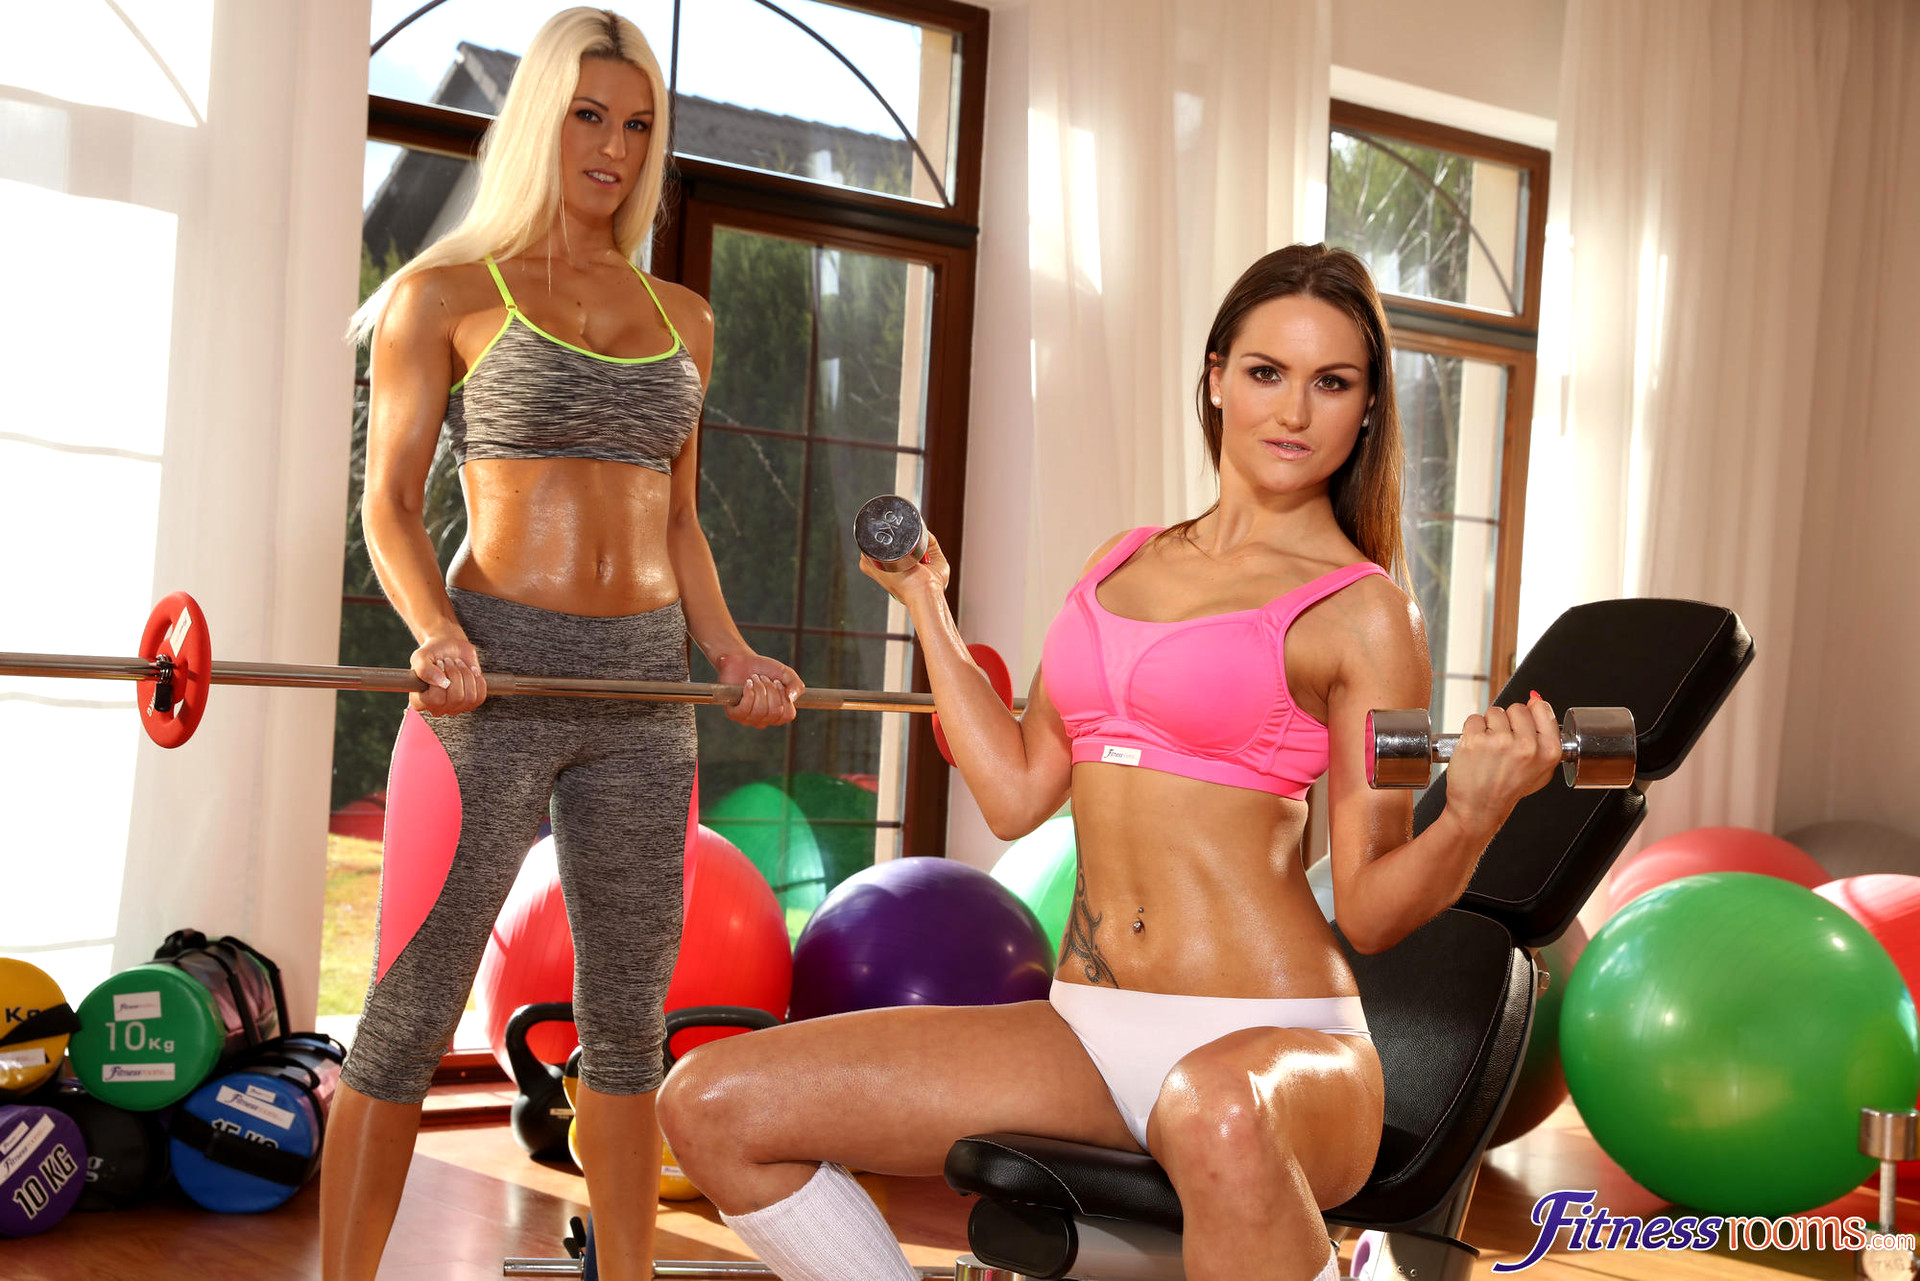 Fitnessrooms two lesbian gym partners workout and then make out 2